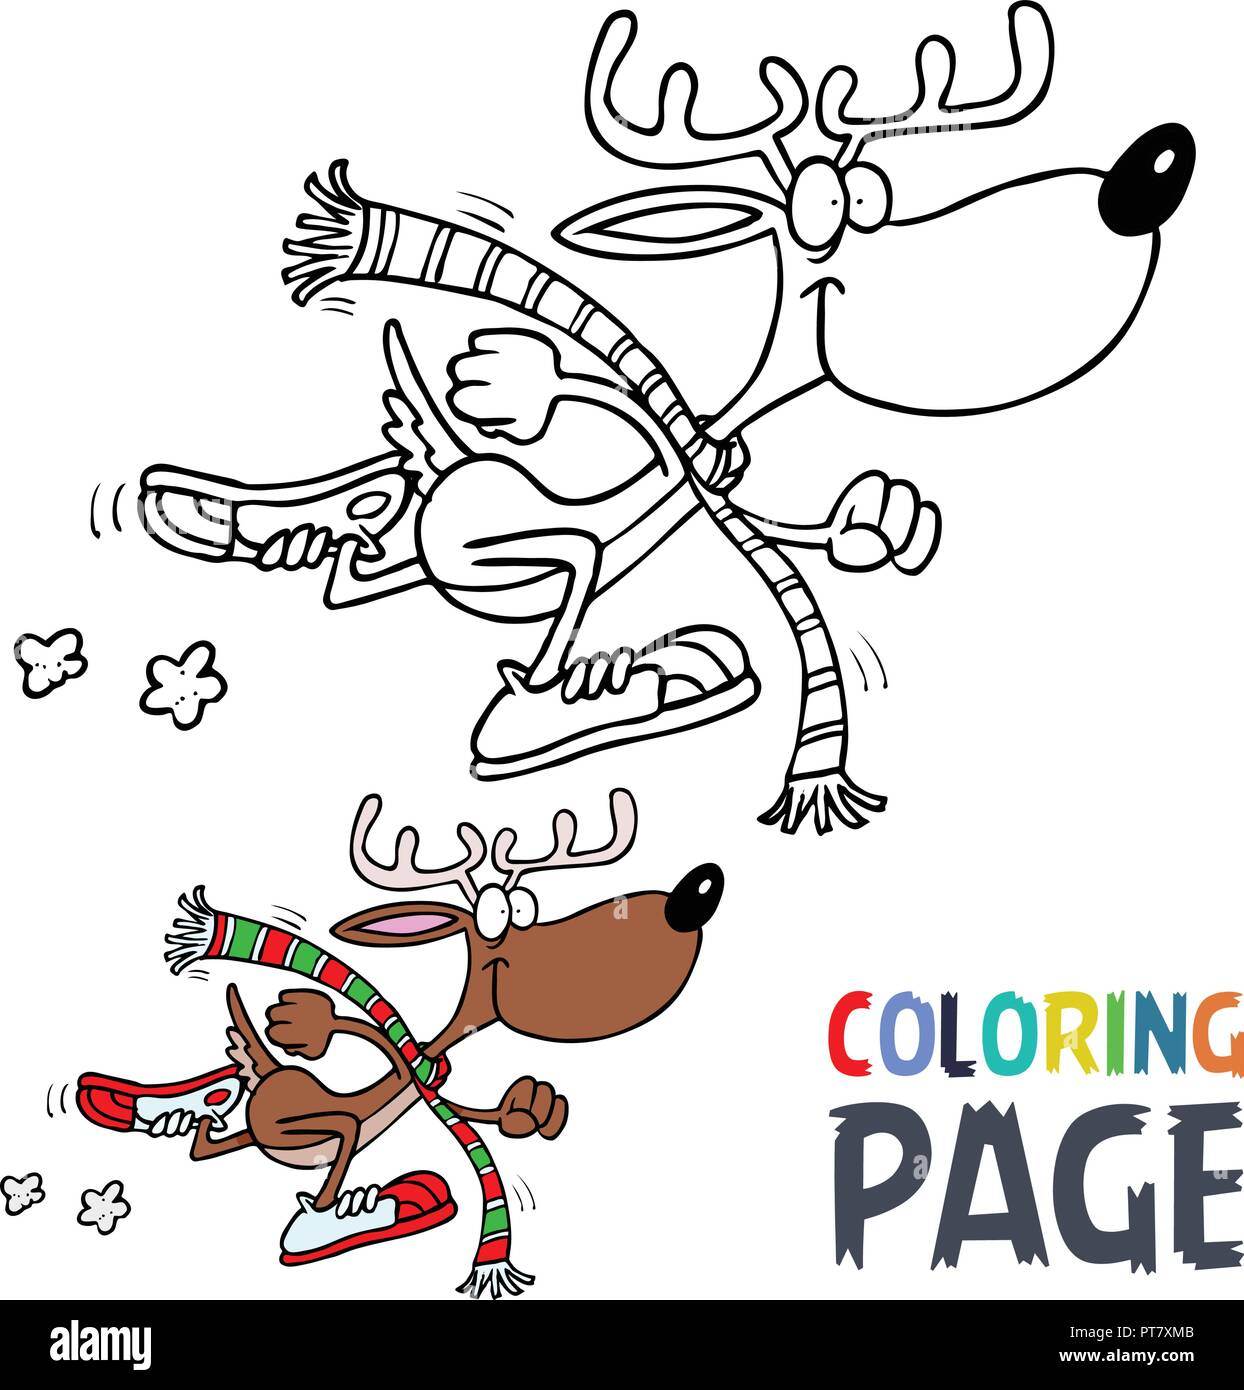 Coloring Page Stock Photos Amp Coloring Page Stock Images